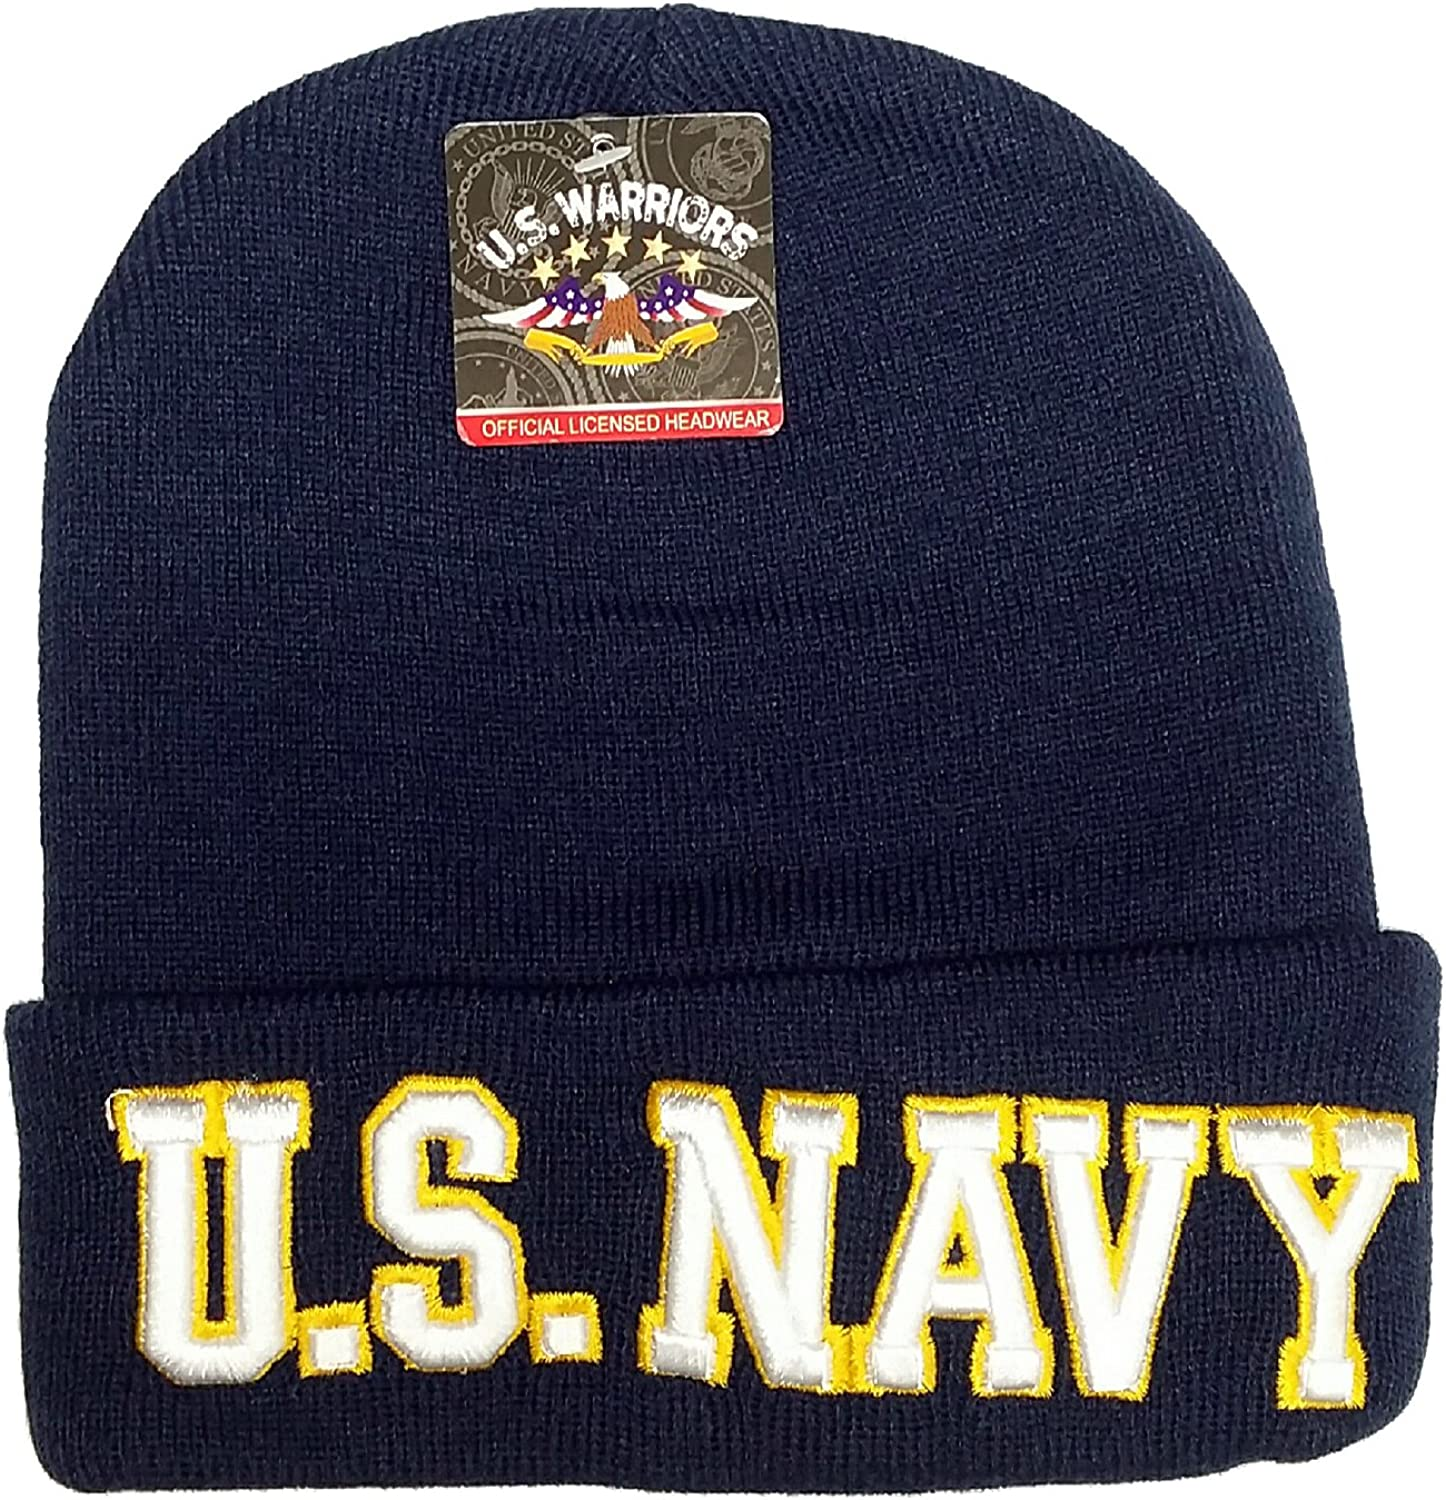 Officially Licensed Marines Stitched Hat Cap Lid Beanie